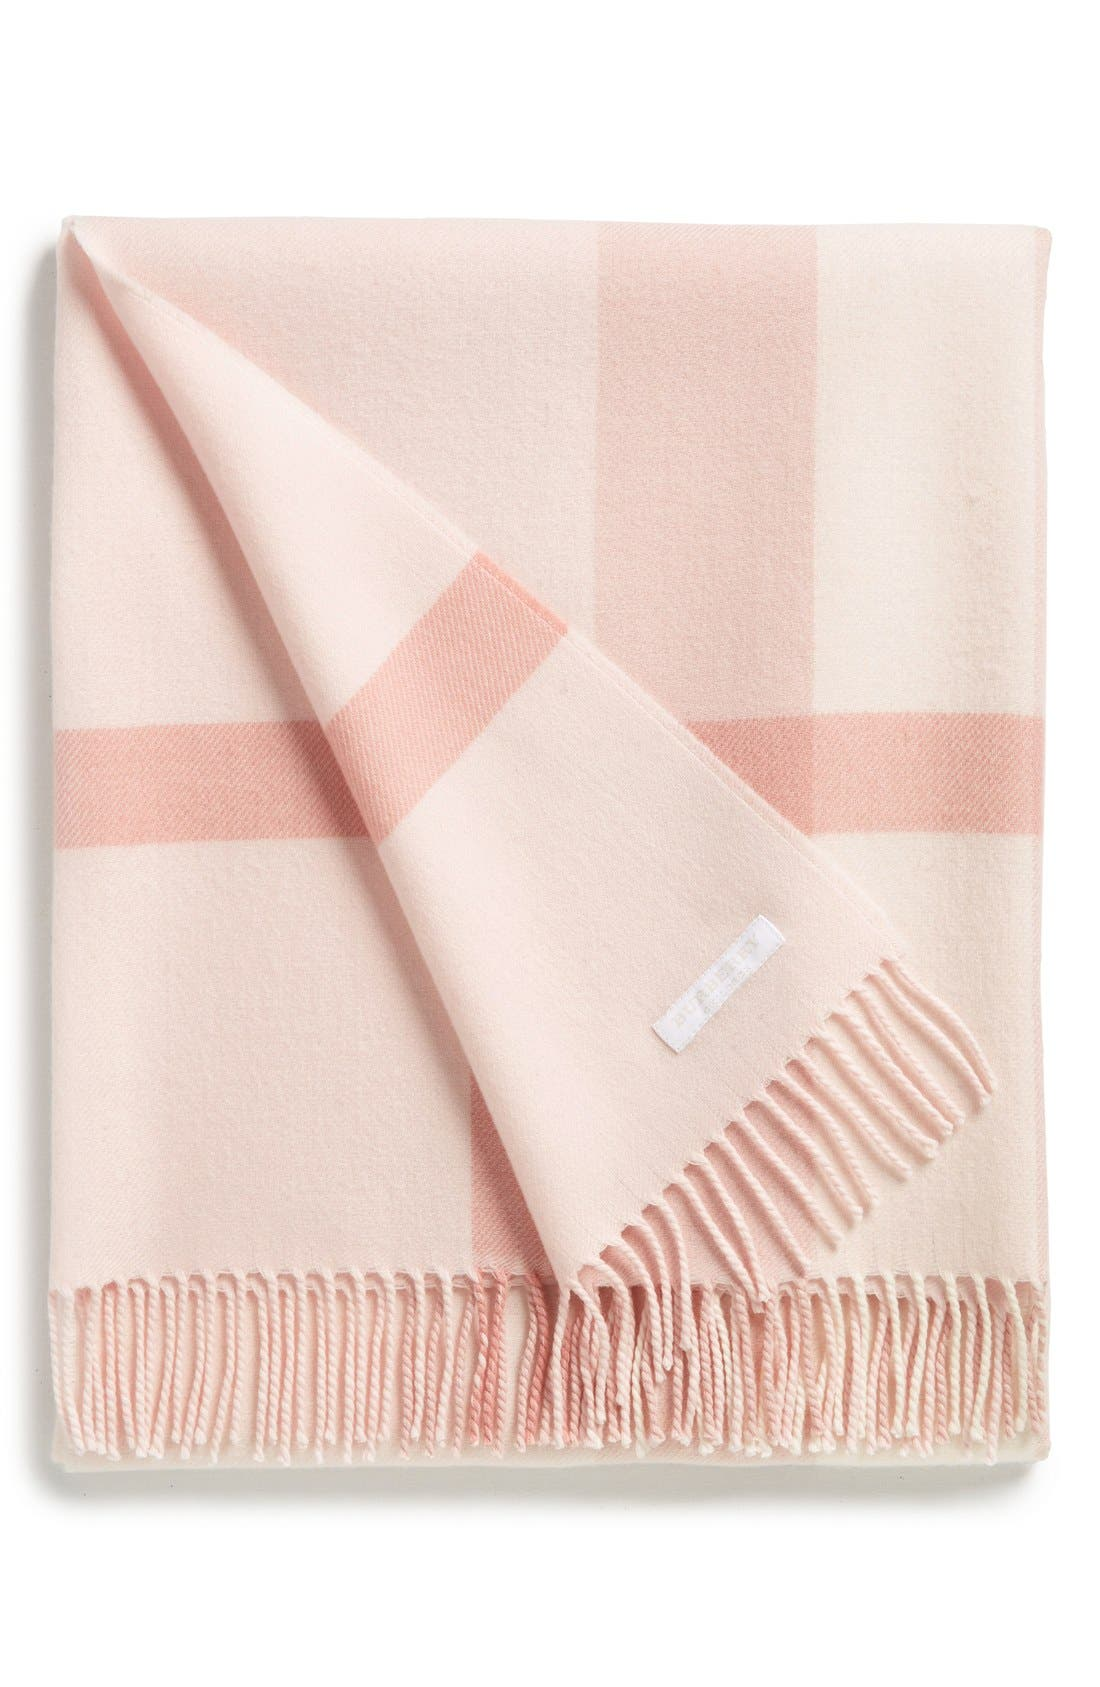 Merino Wool Baby Blanket,                             Main thumbnail 1, color,                             Powder Pink